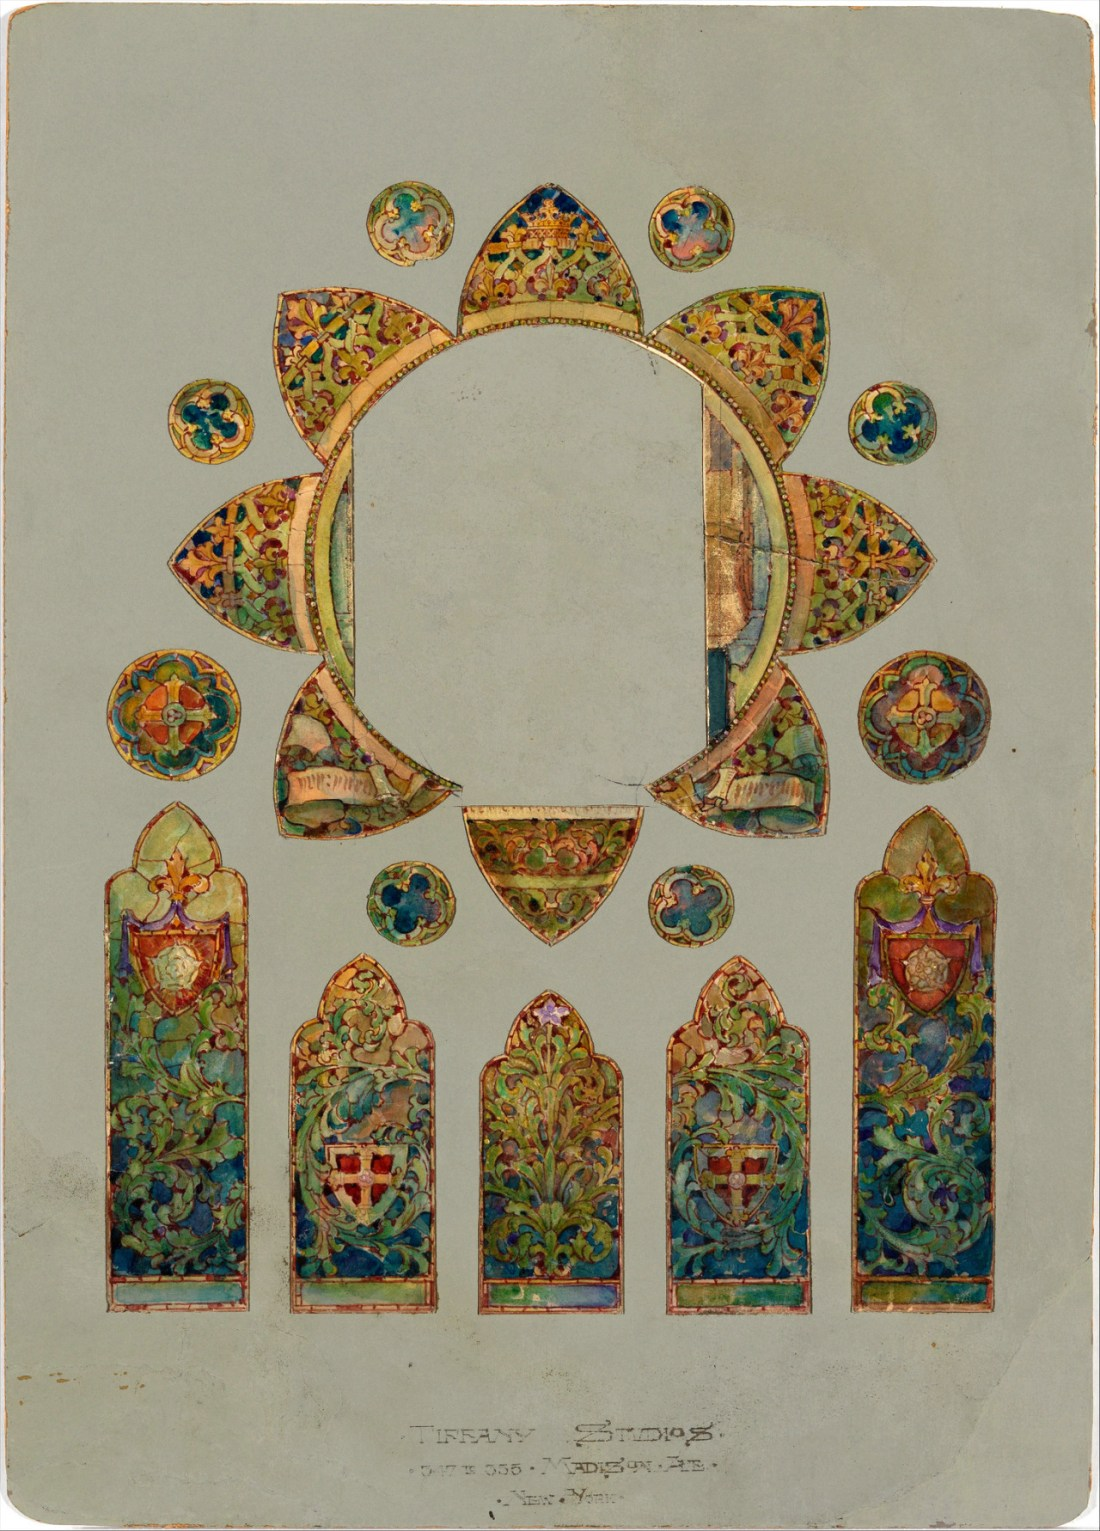 Stained glass window design. Undated.